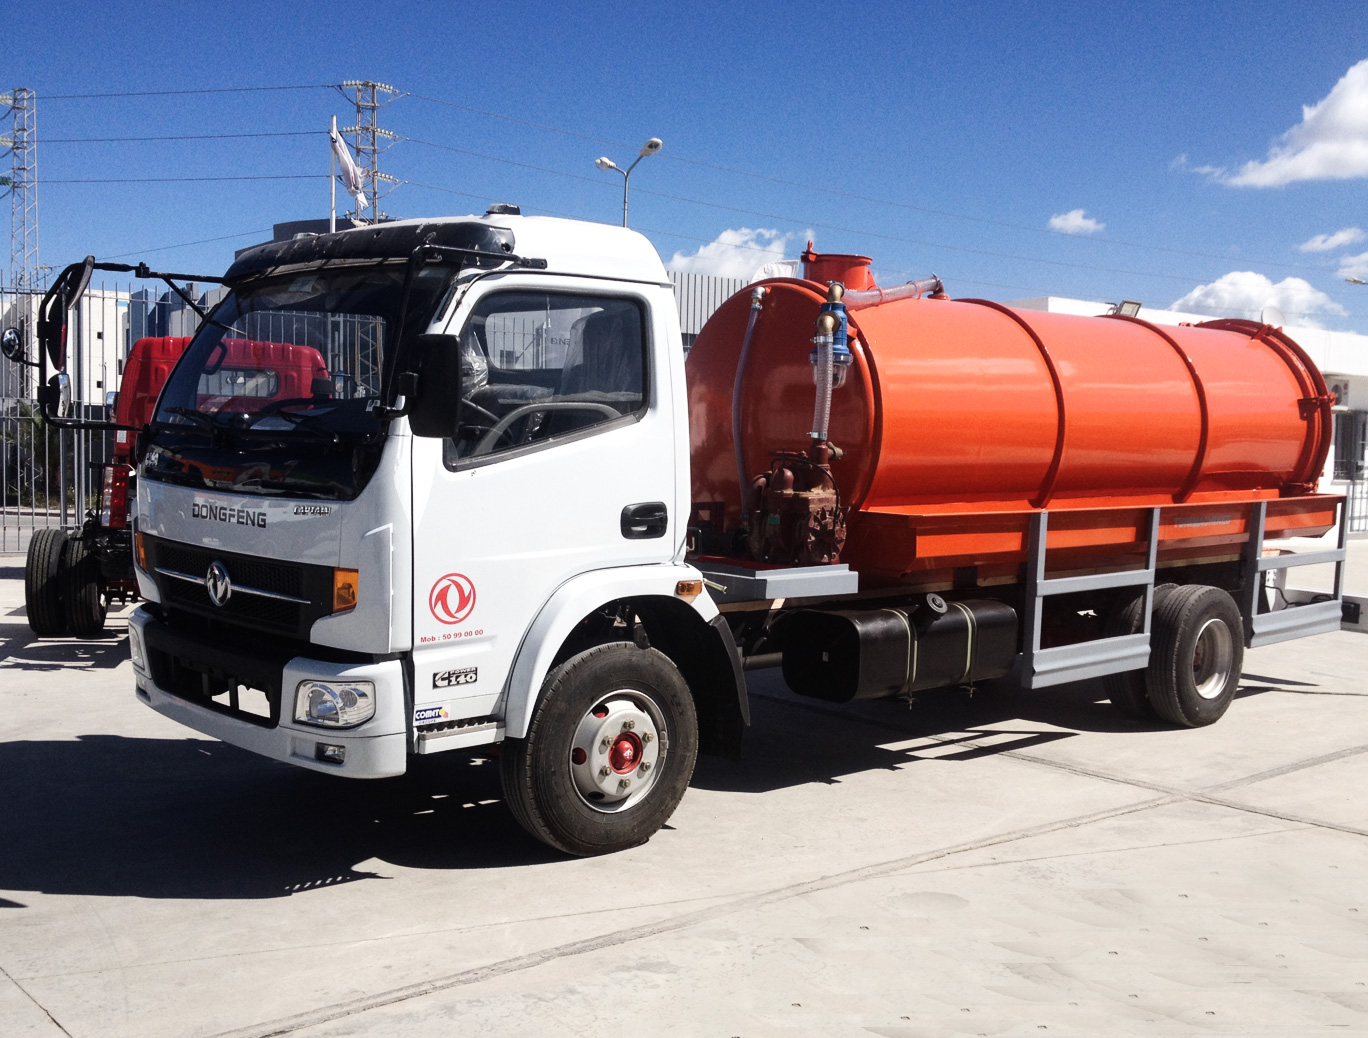 Camion DONGFENG CAPTAIN C93